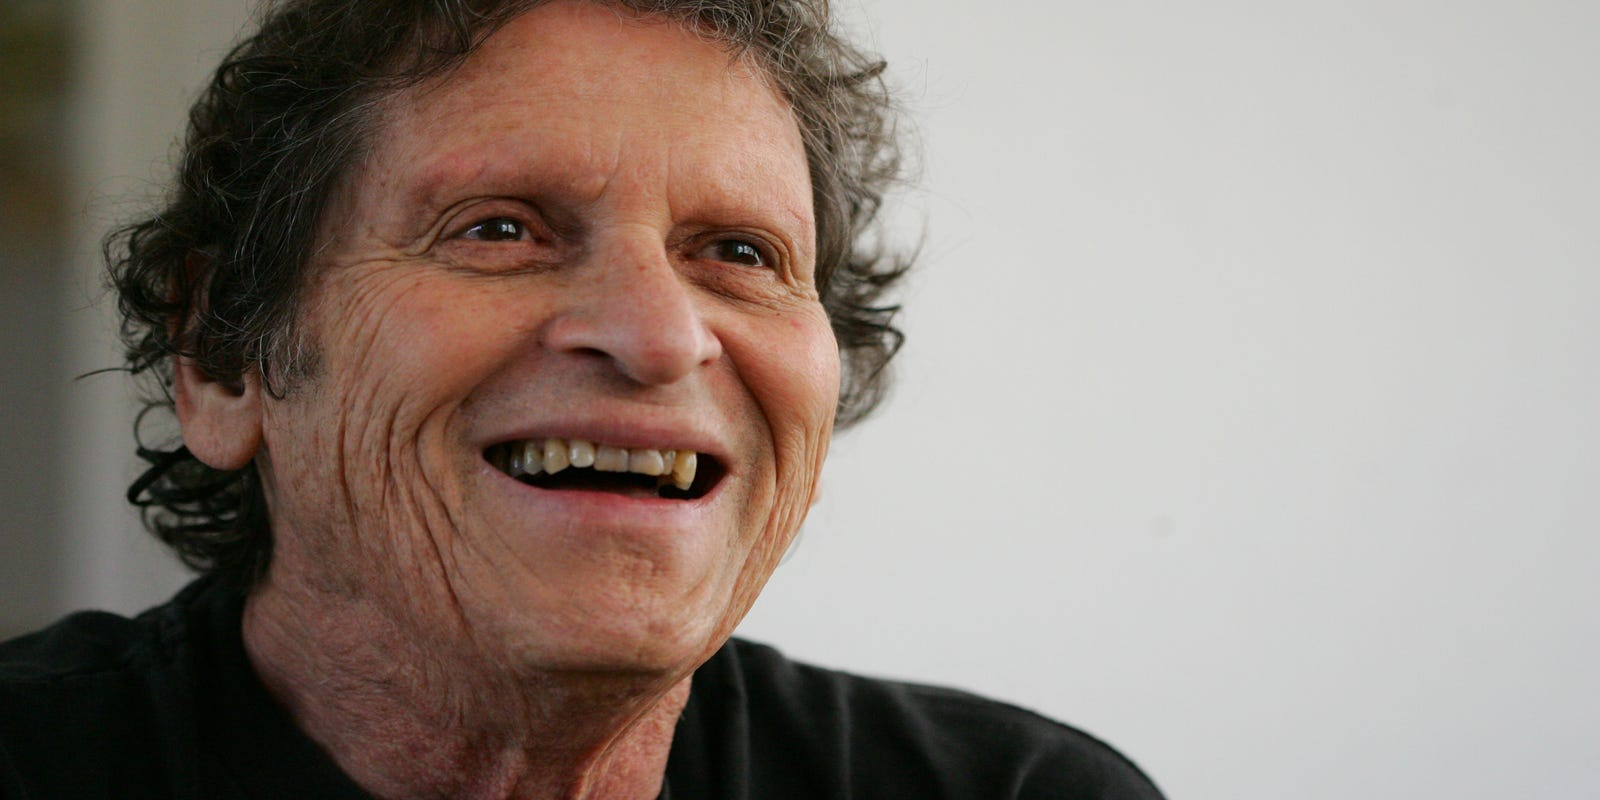 Paul Krassner, co-founder of the Yippies, died Sunday in Desert Hot Springs